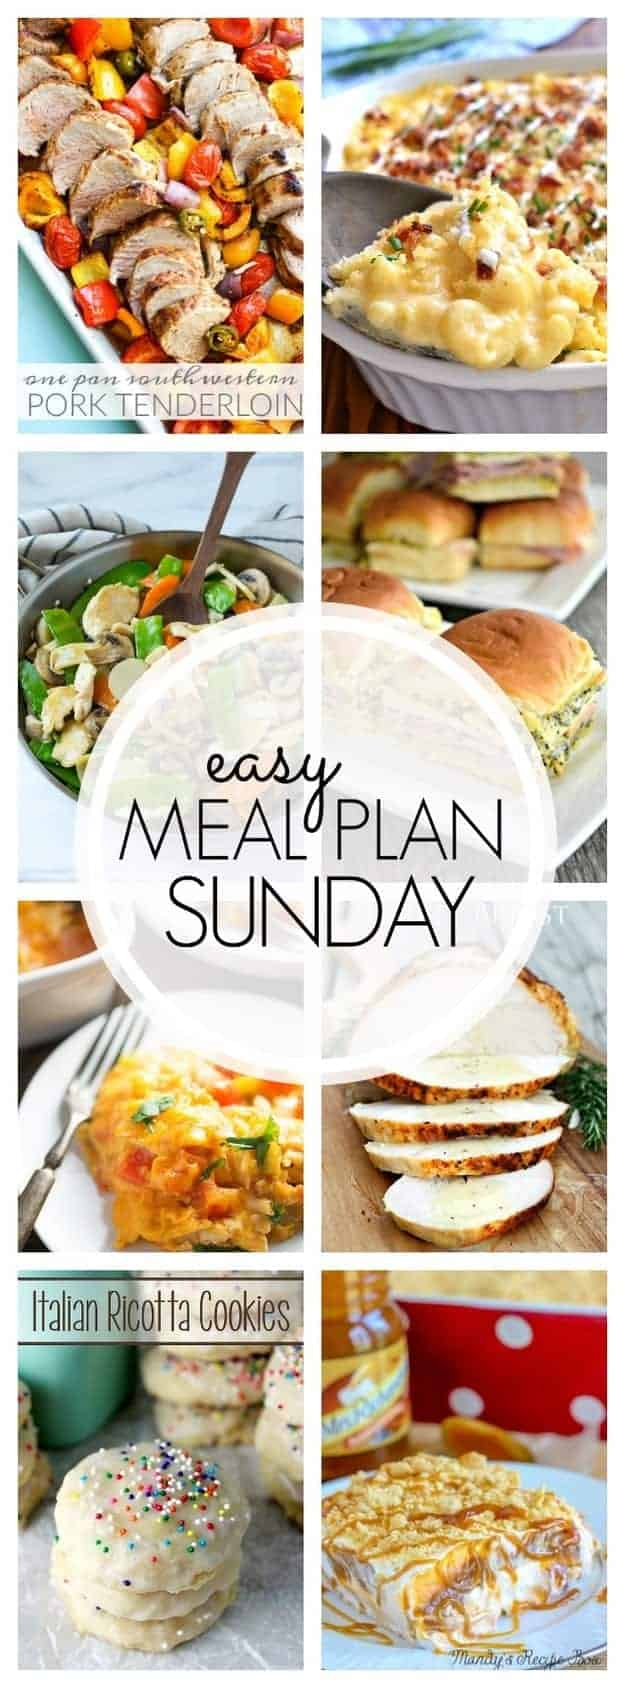 An easy weekly meal plan that is full of family favorite recipes!